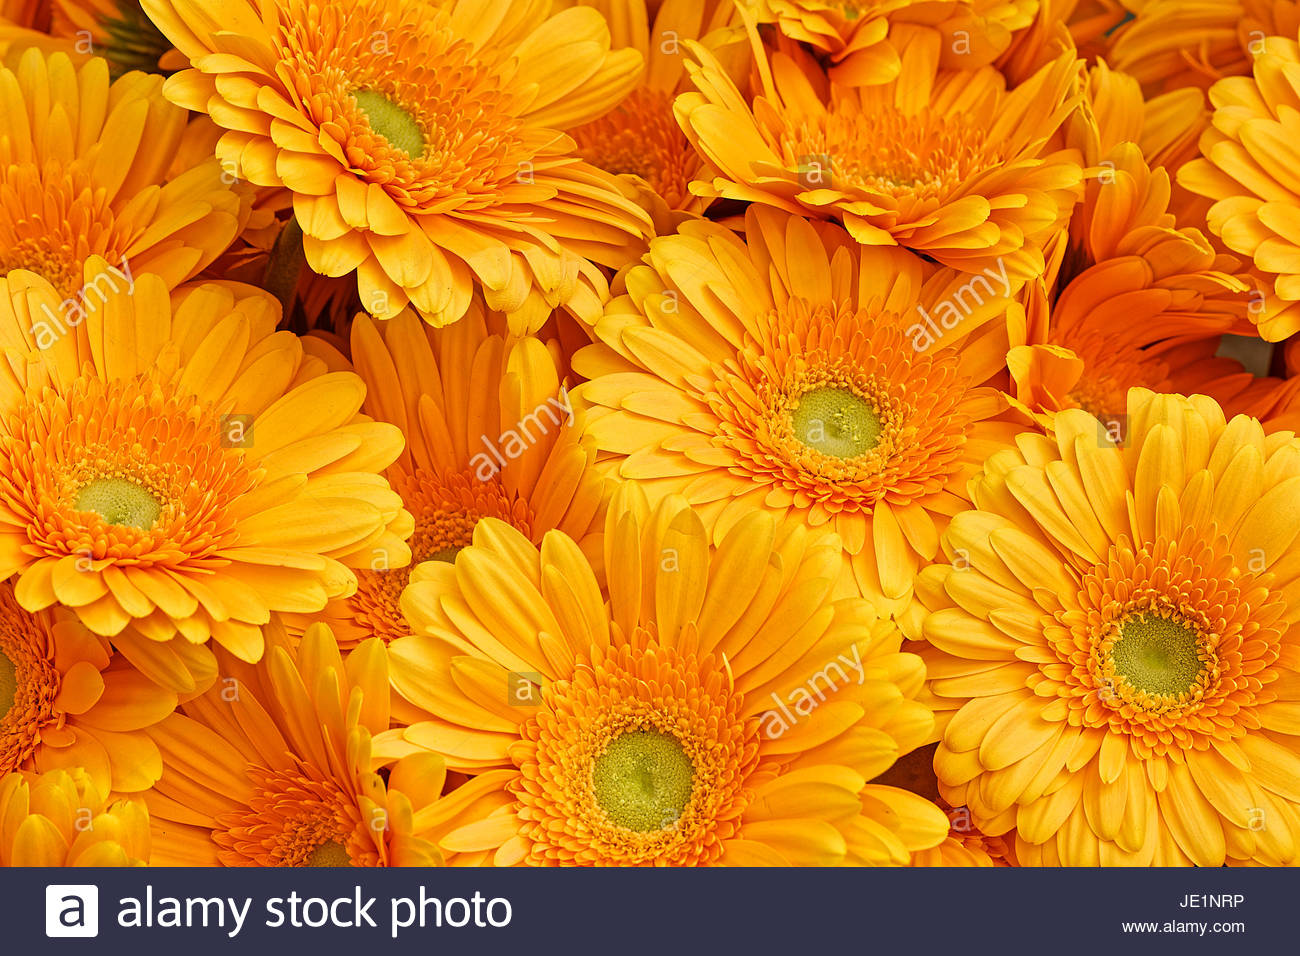 orange margerites - Stock Image